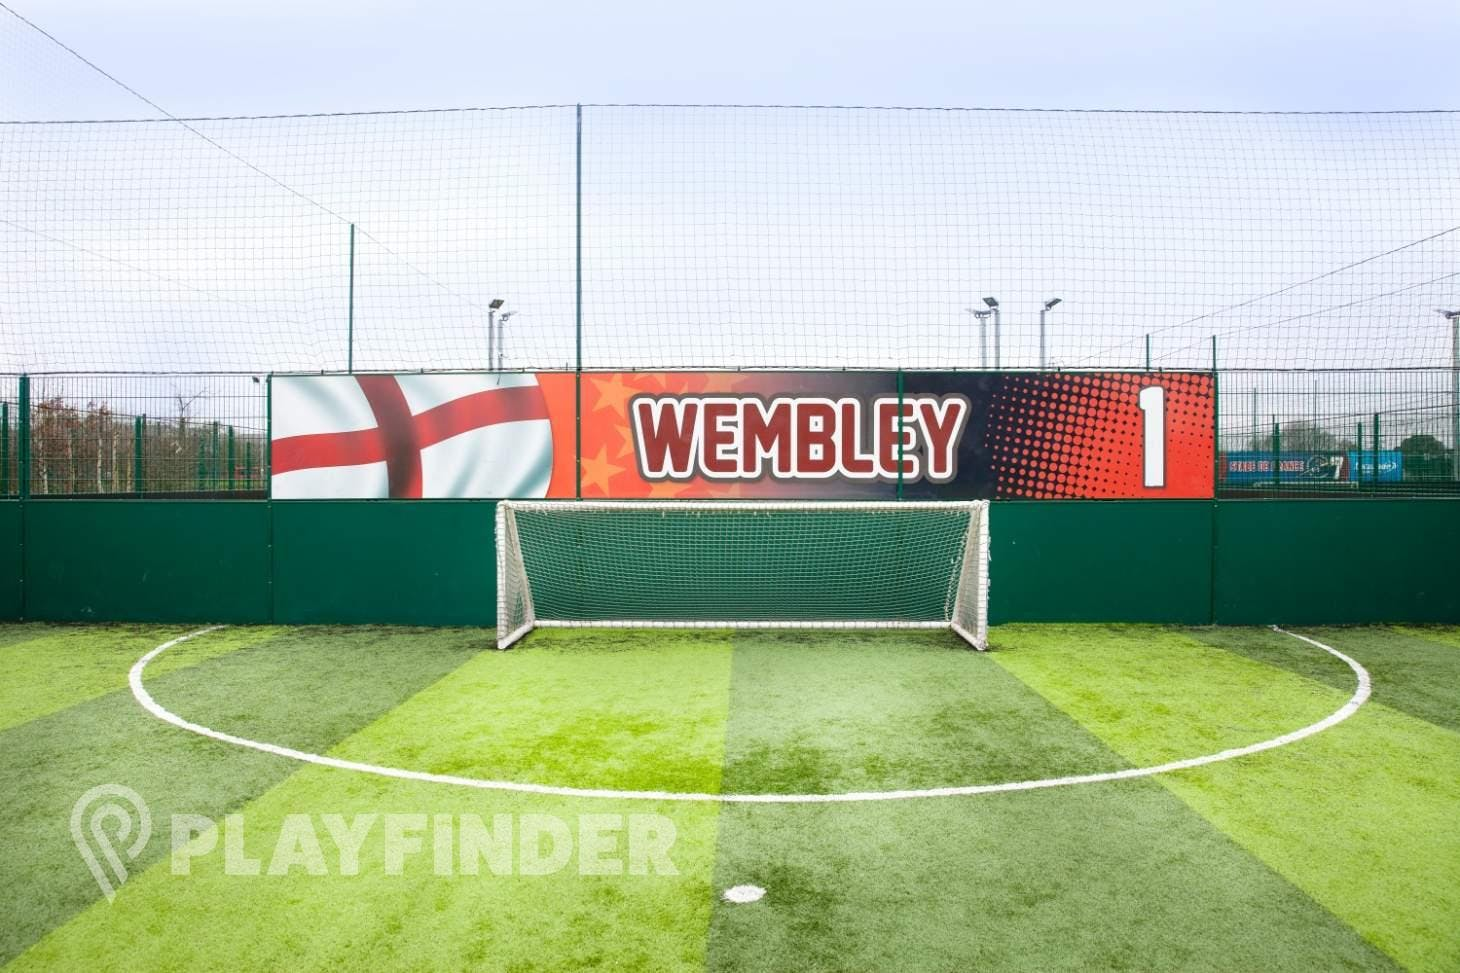 Goals Heathrow 5 a side | 3G Astroturf football pitch